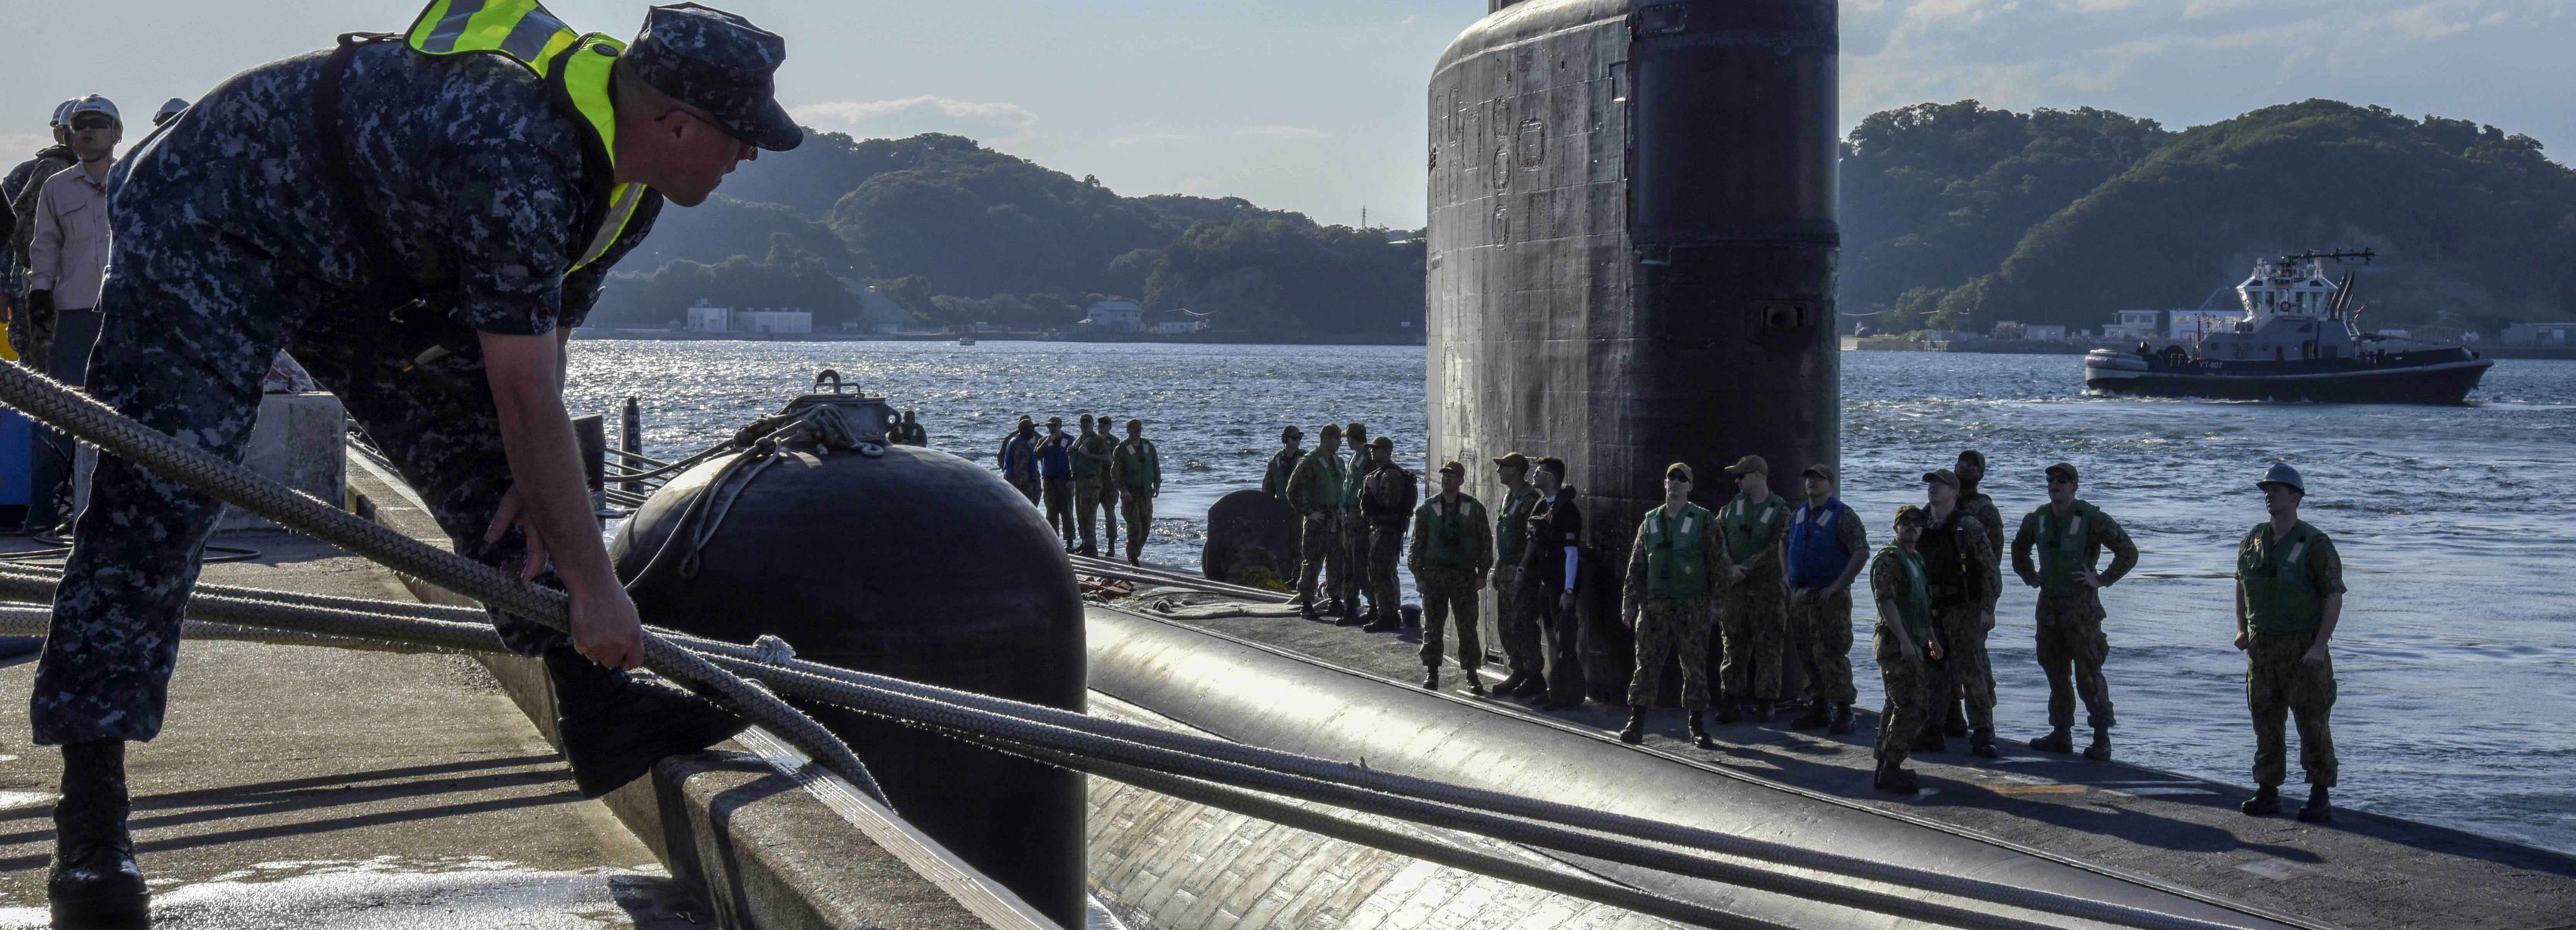 USS Columbia (SSN 771) Port Visit